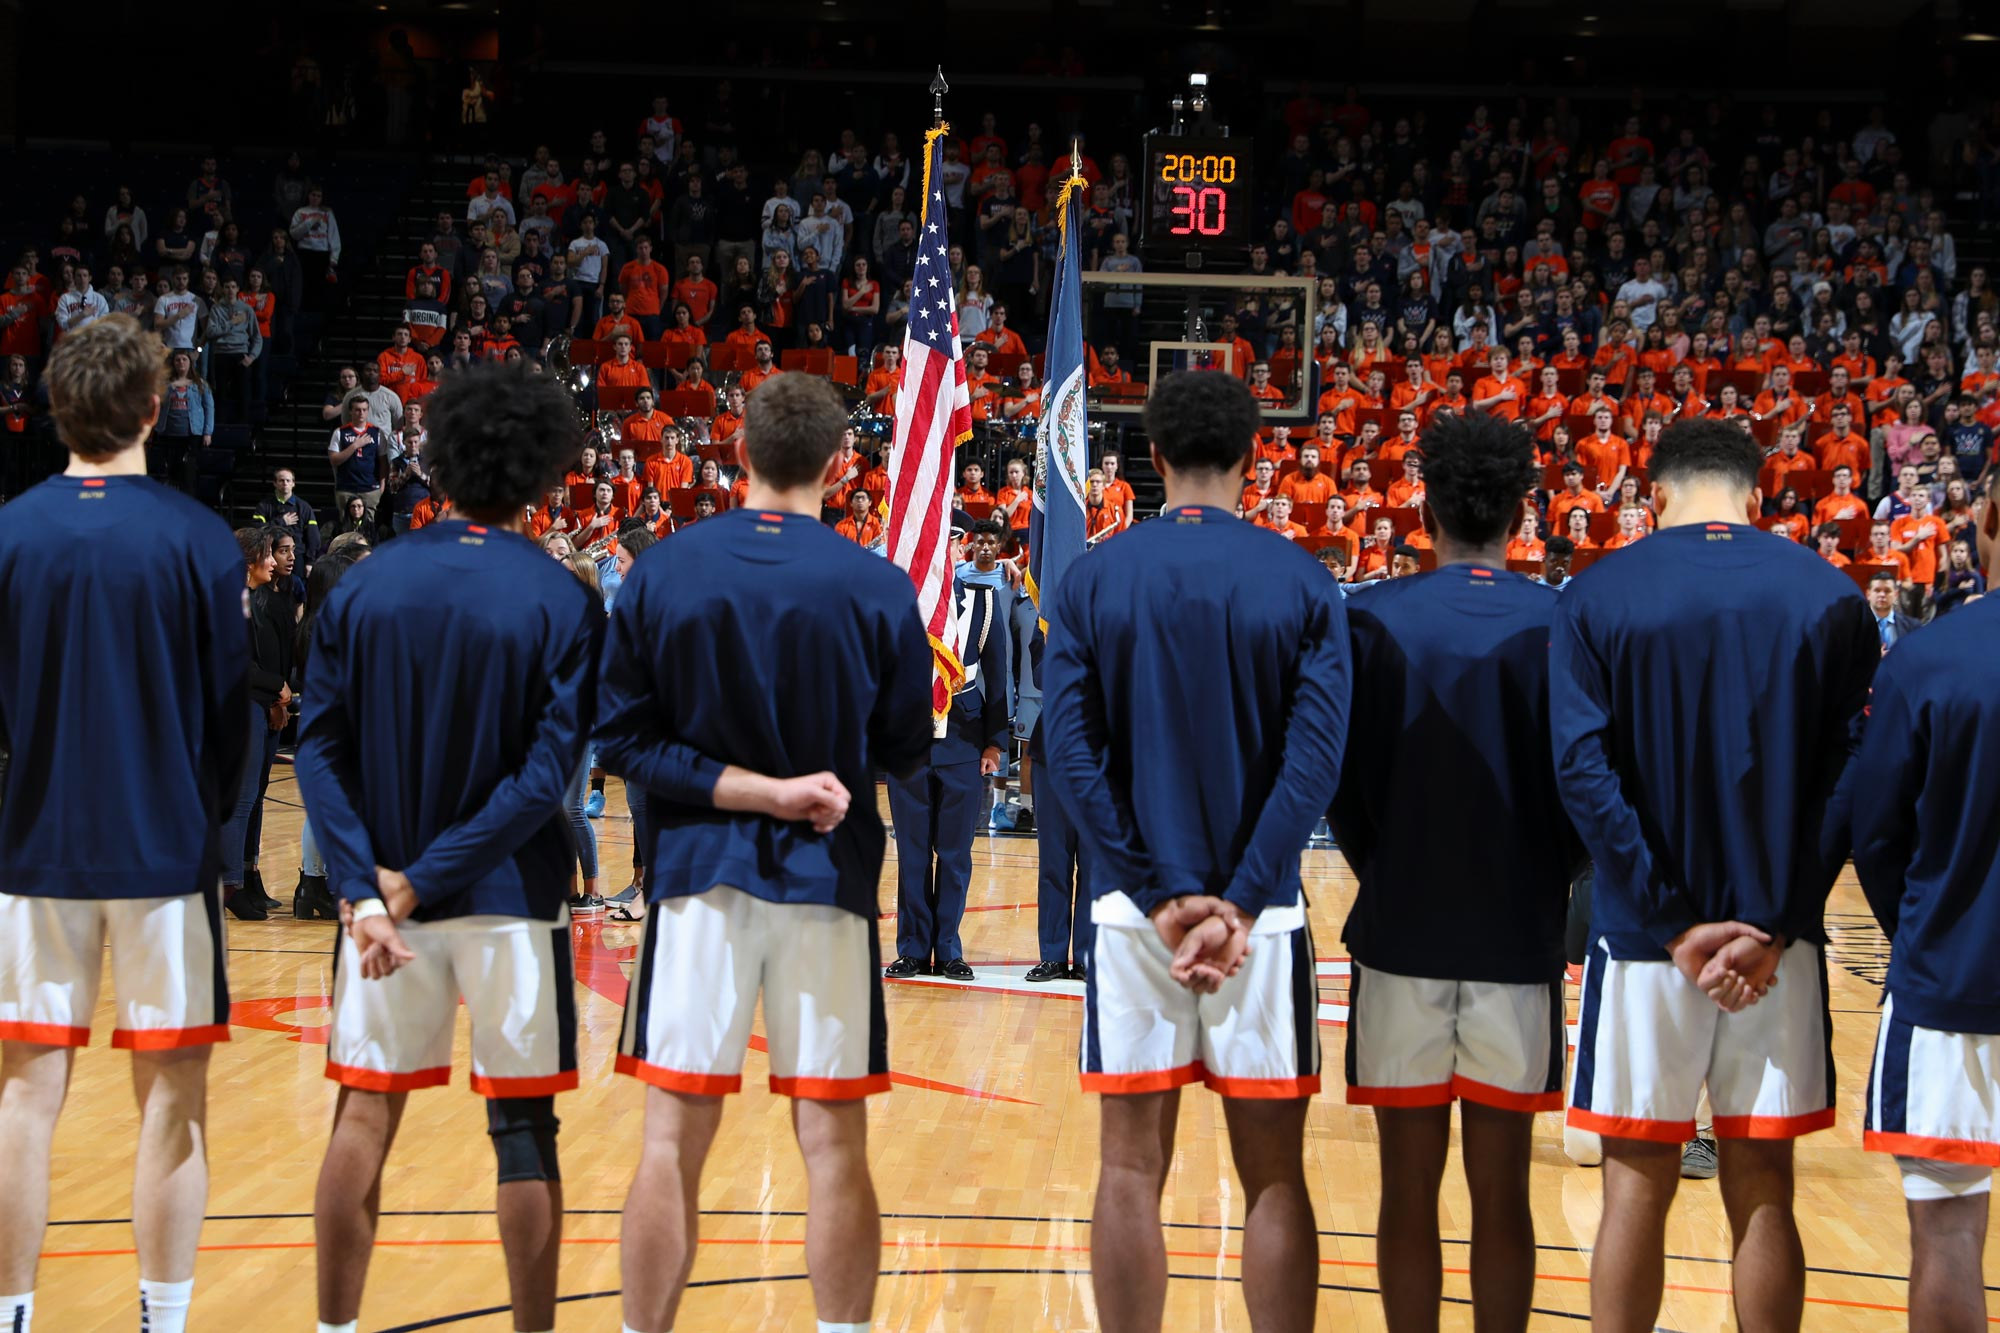 Members of the UVA basketball program pride themselves on giving back – to each other, as well as people in their communities.